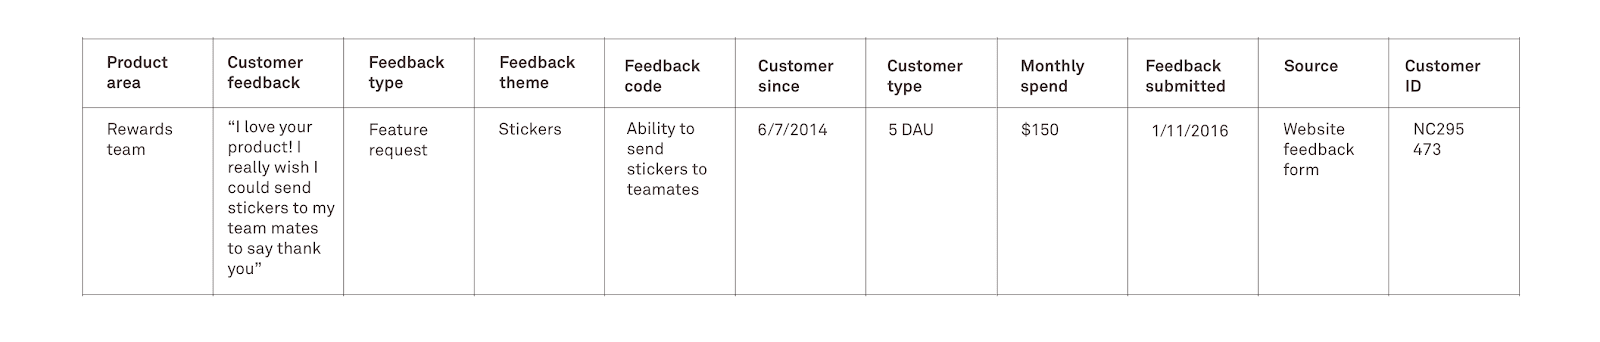 Collate your feedback data